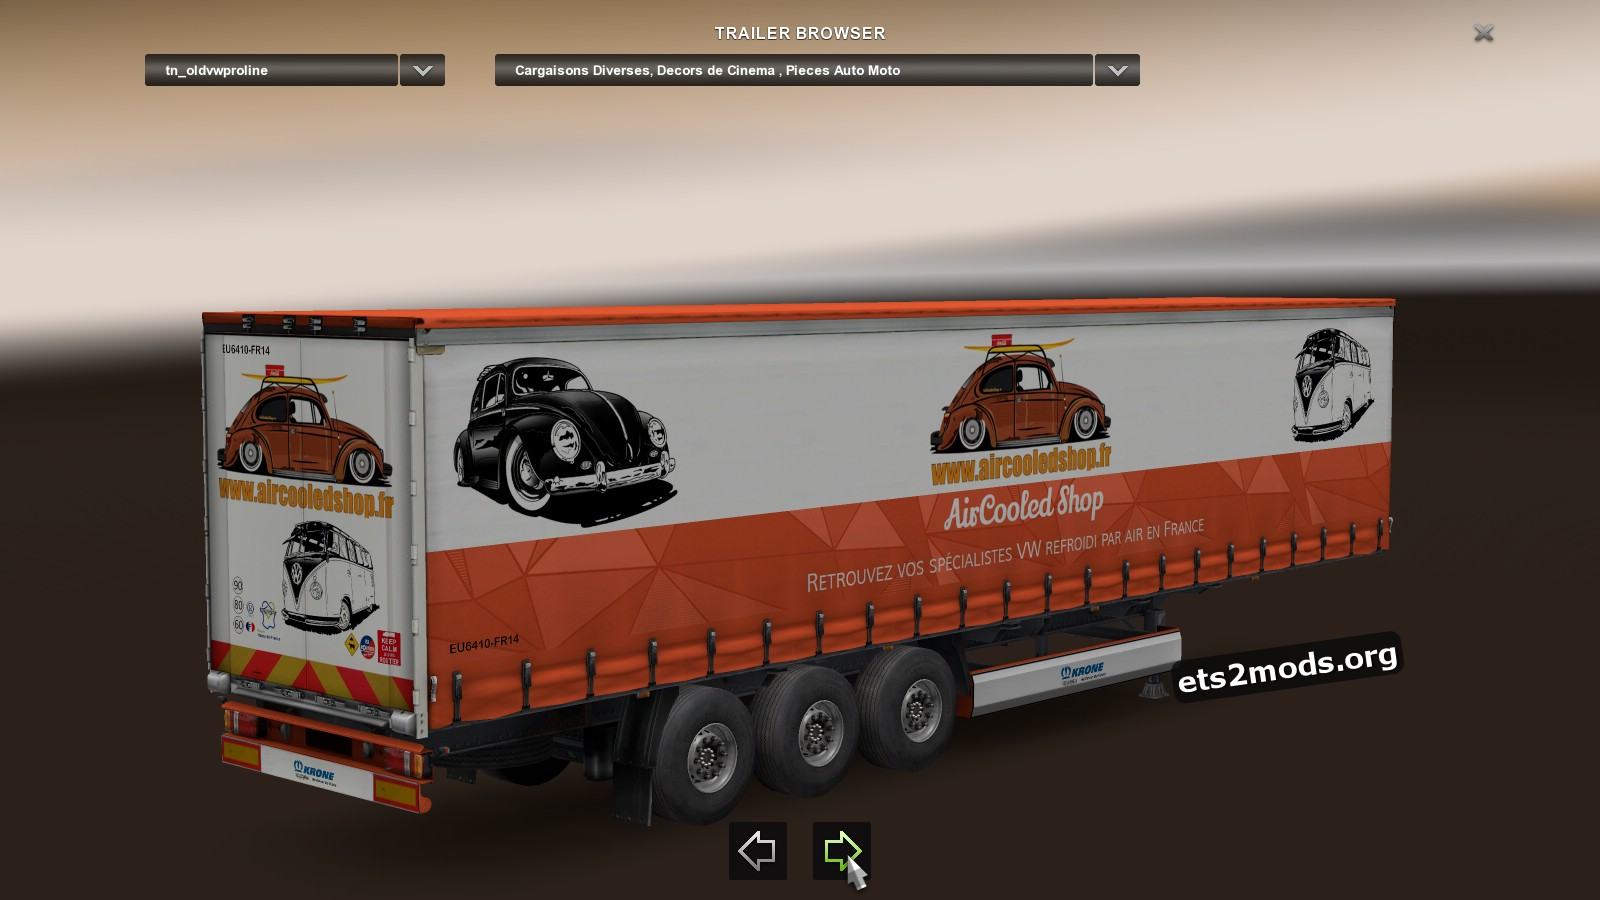 Trailer Pack made by Philippe McS (Black Diavel)